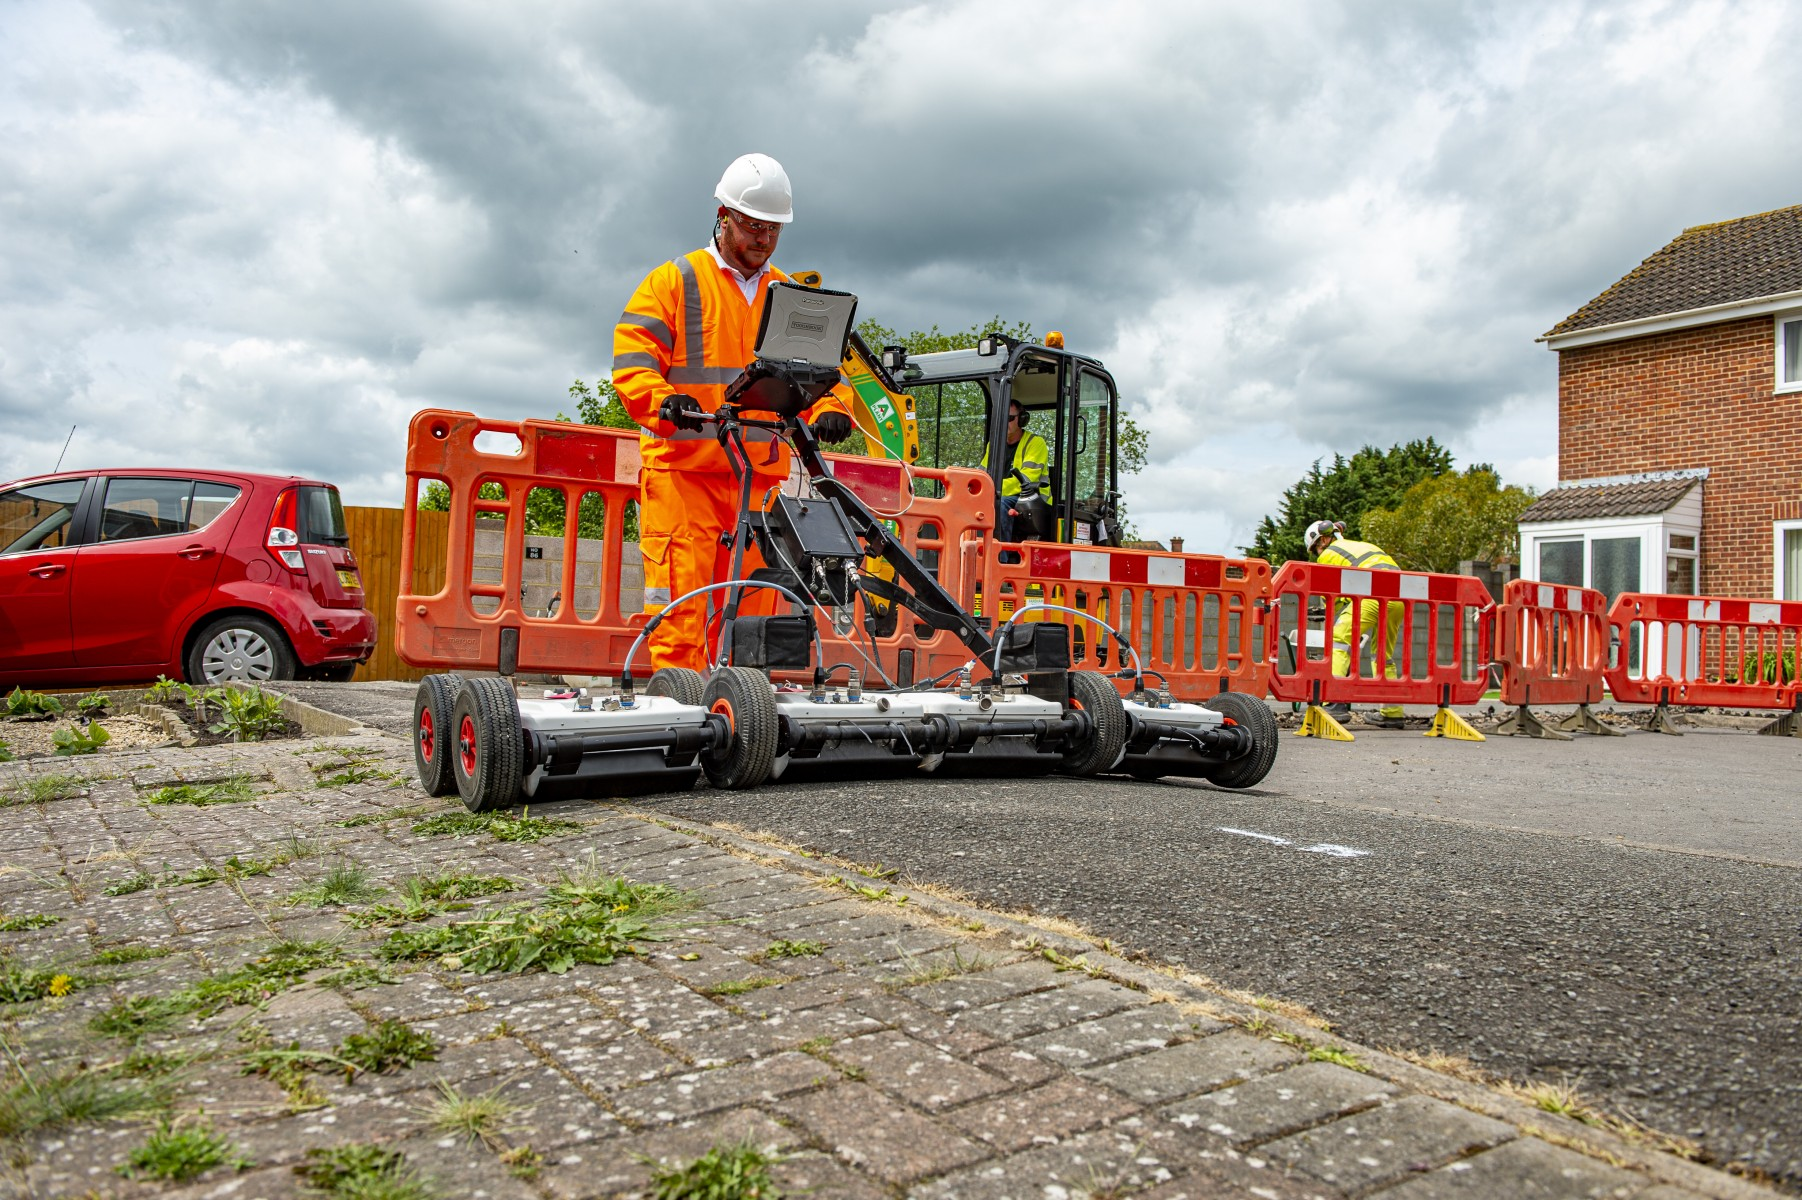 Engineer using Ground Penetrating Radar to help lay fibre cable